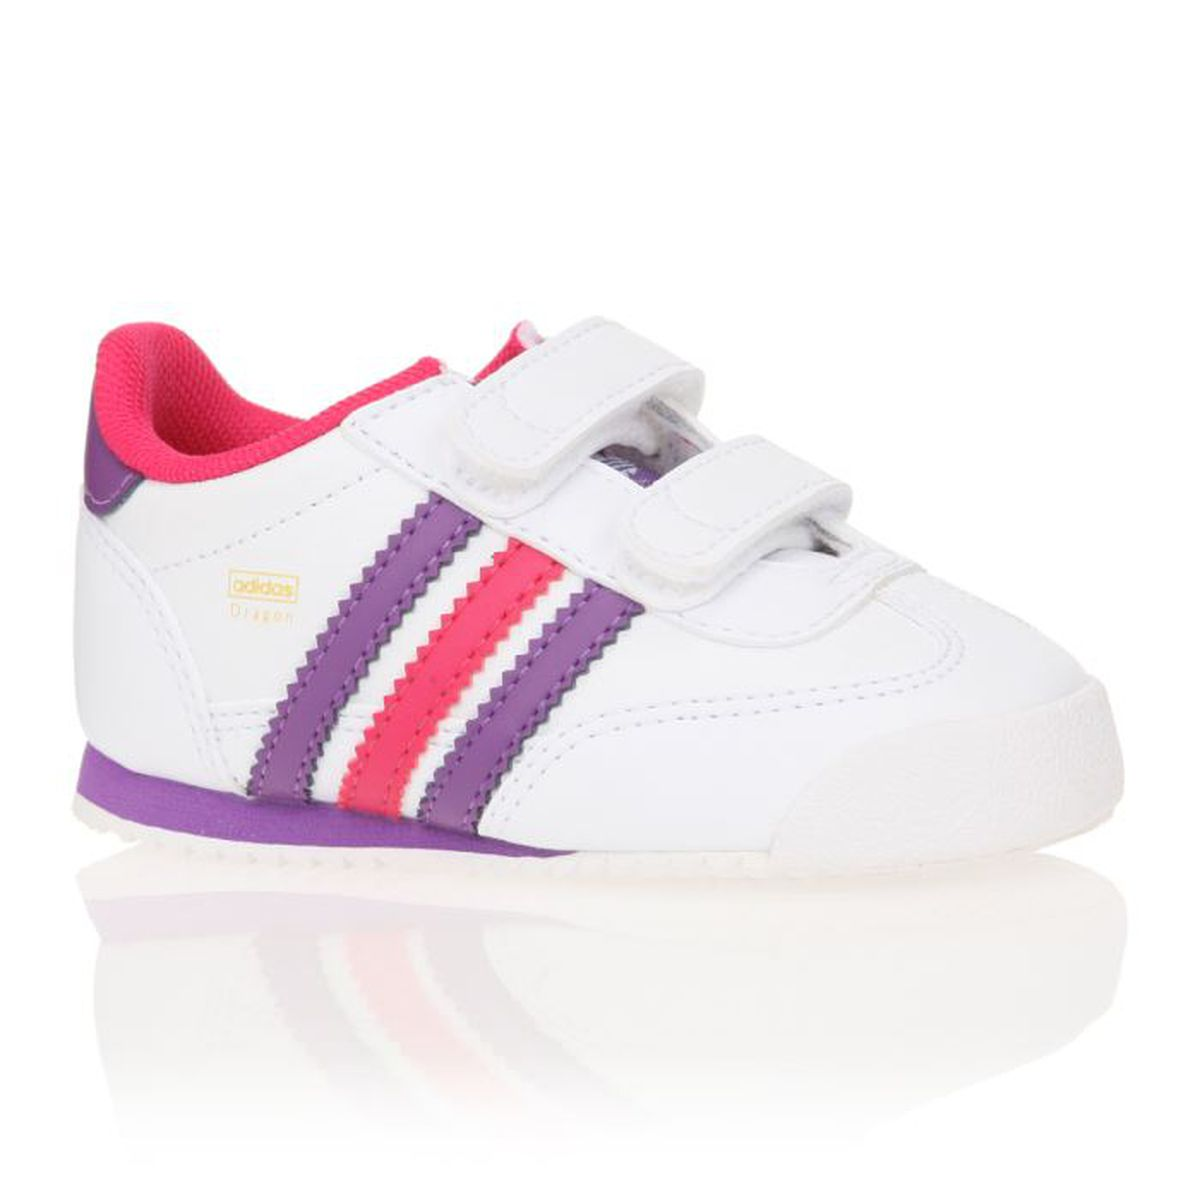 de48a0d604811 ADIDAS ORIGINALS Baskets Dragon Cf Bébé Fille Blanc   Violet   Rose ...